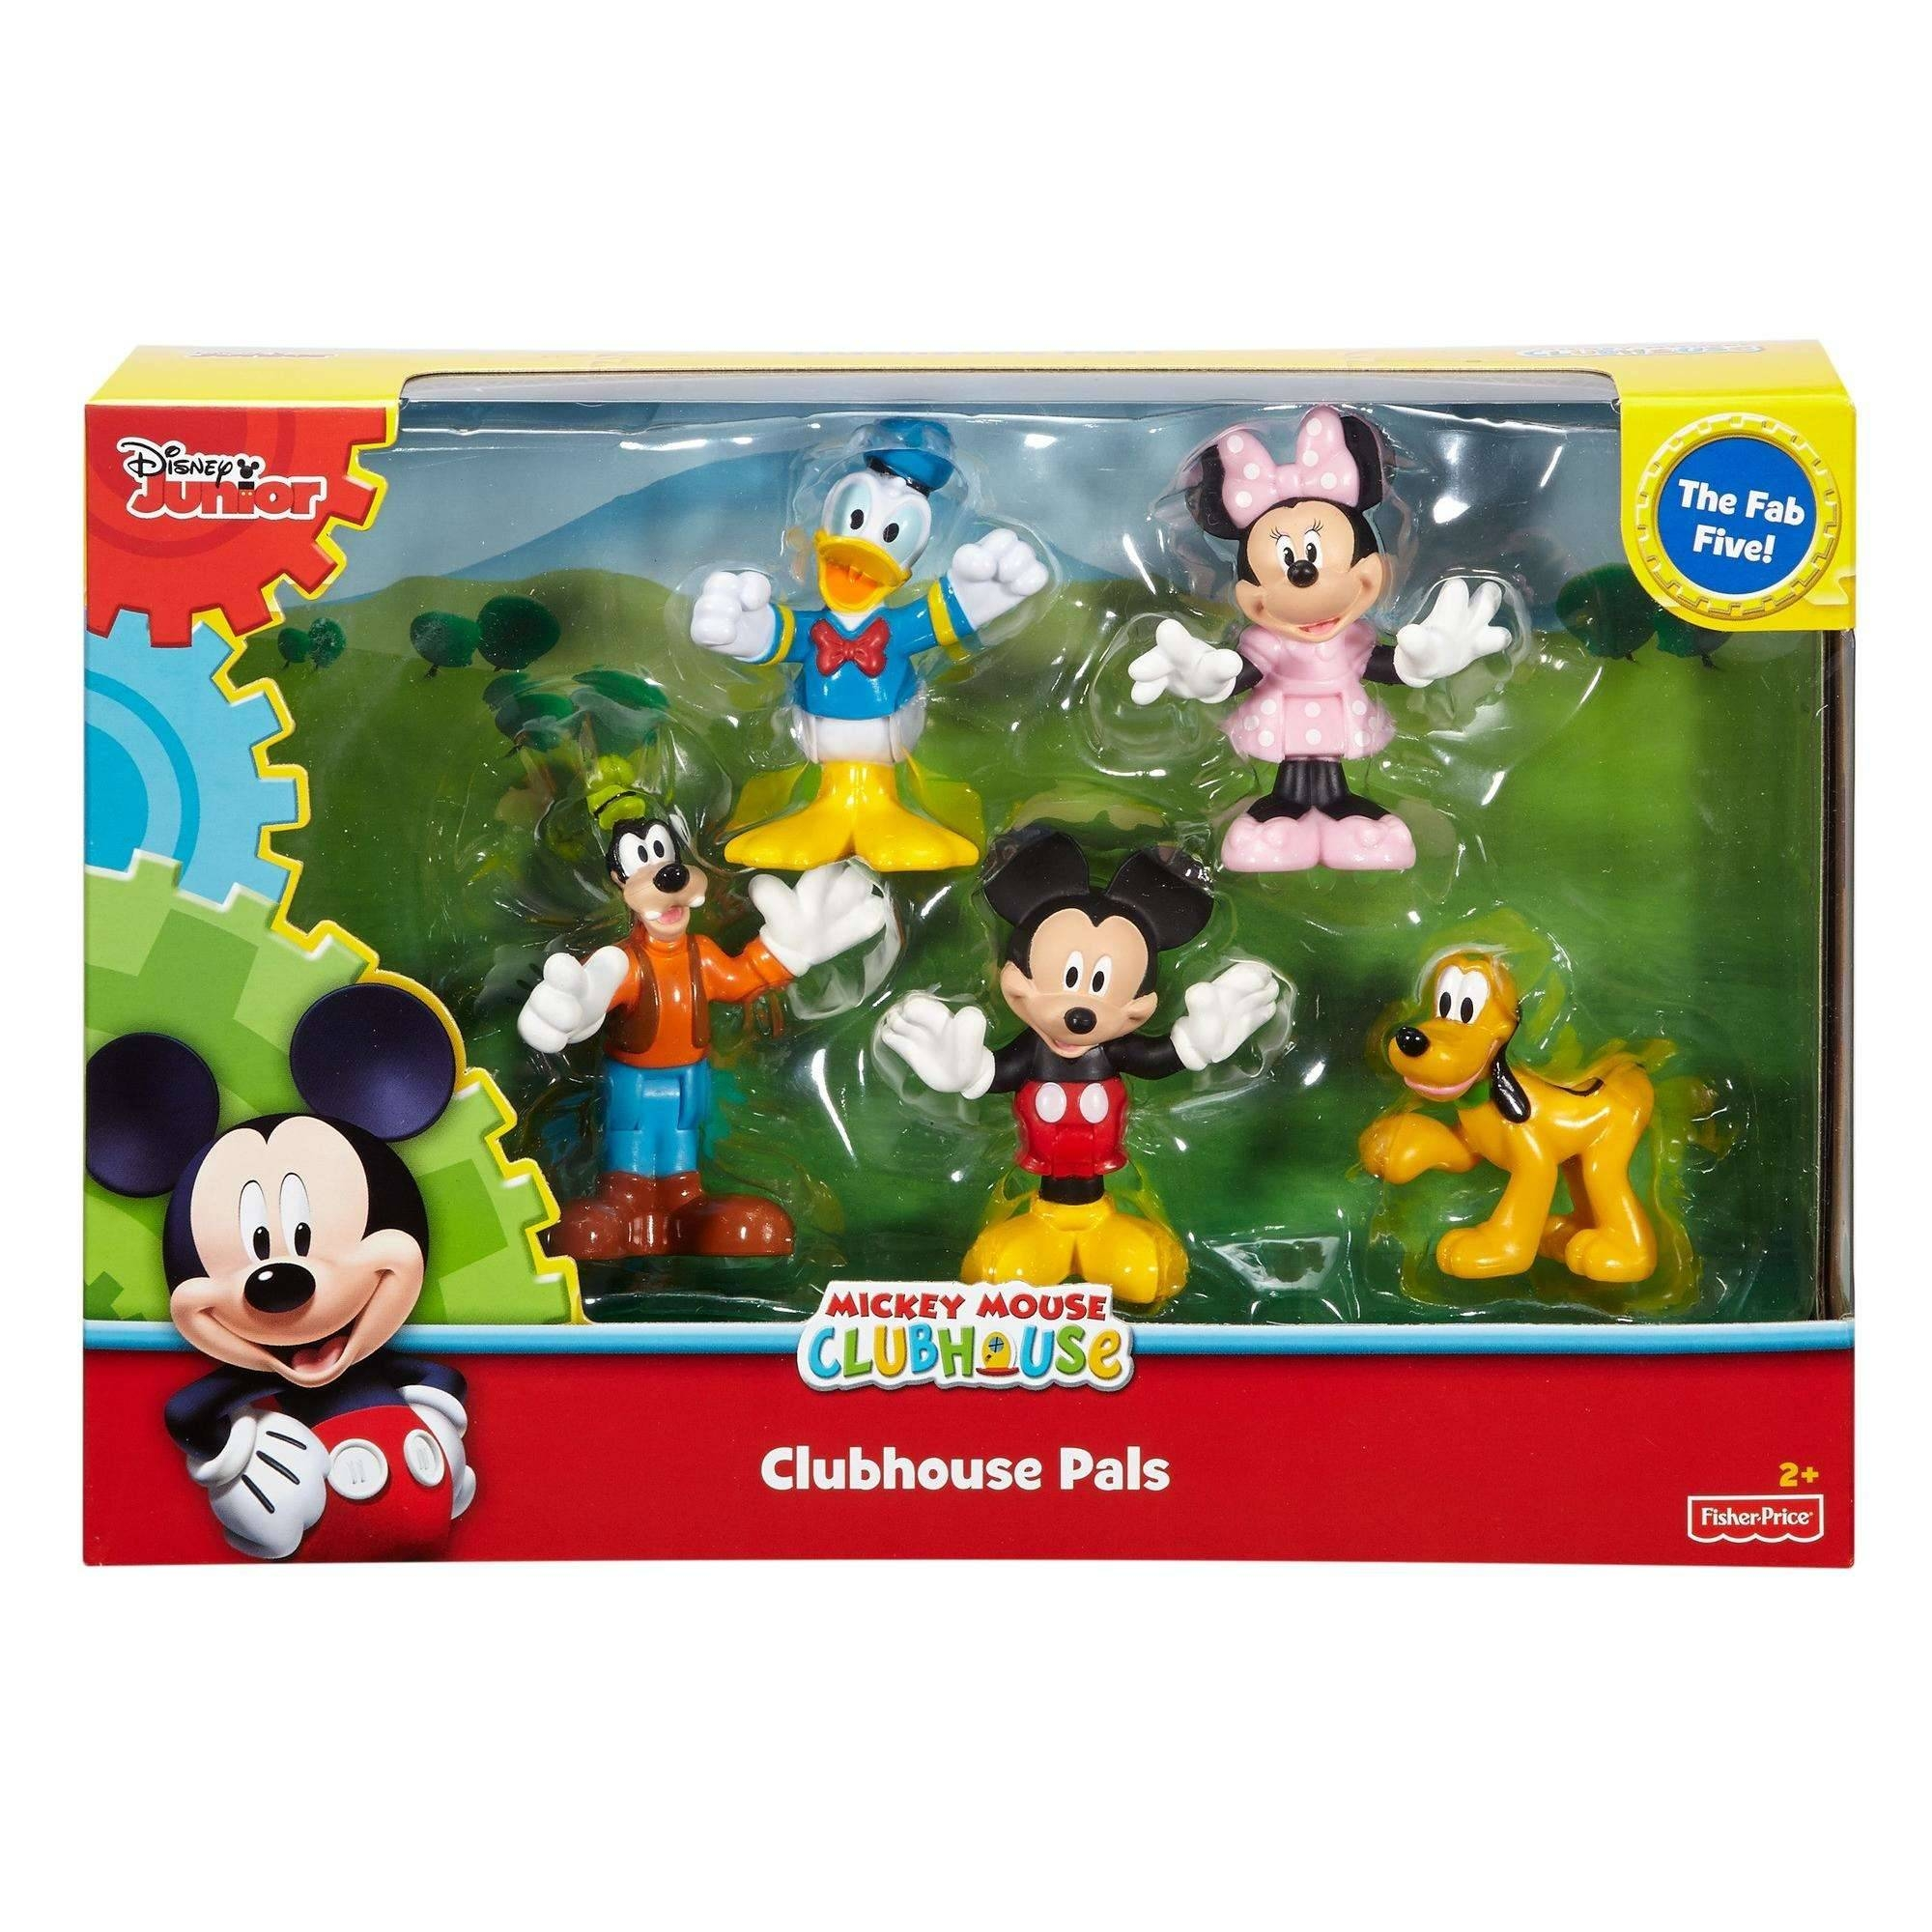 Disney Mickey Mouse Clubhouse Pals – Walmart Pertaining To Recent Mickey Mouse Clubhouse Wall Art (View 4 of 20)